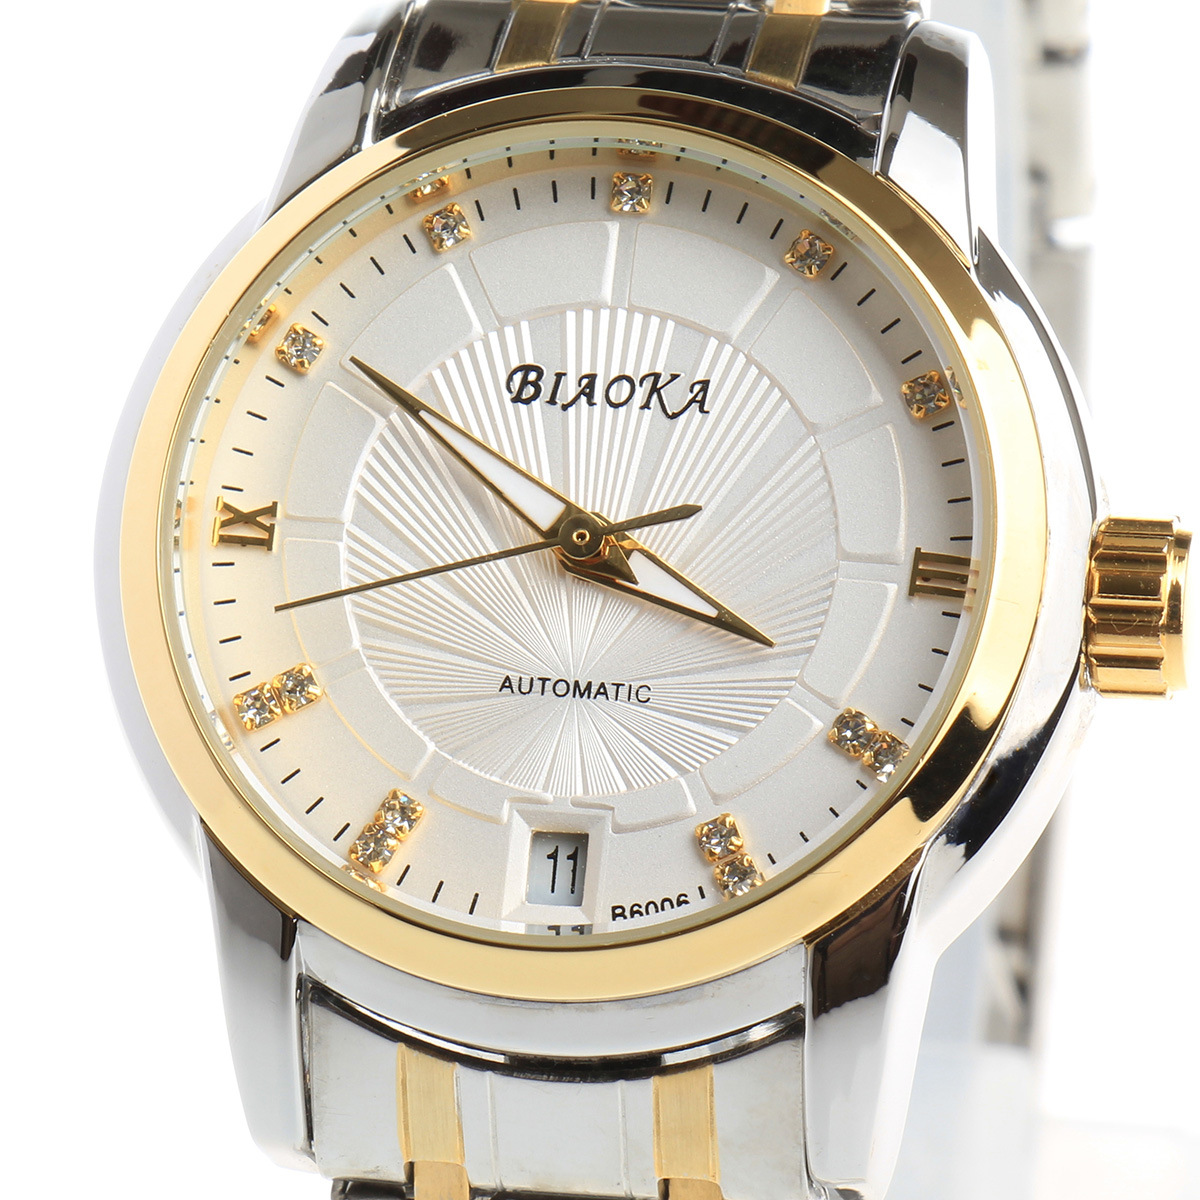 BIAOKA Brand New Fashion Gold Watch Stilig Stål Kvinnor Klocka - Damklockor - Foto 1